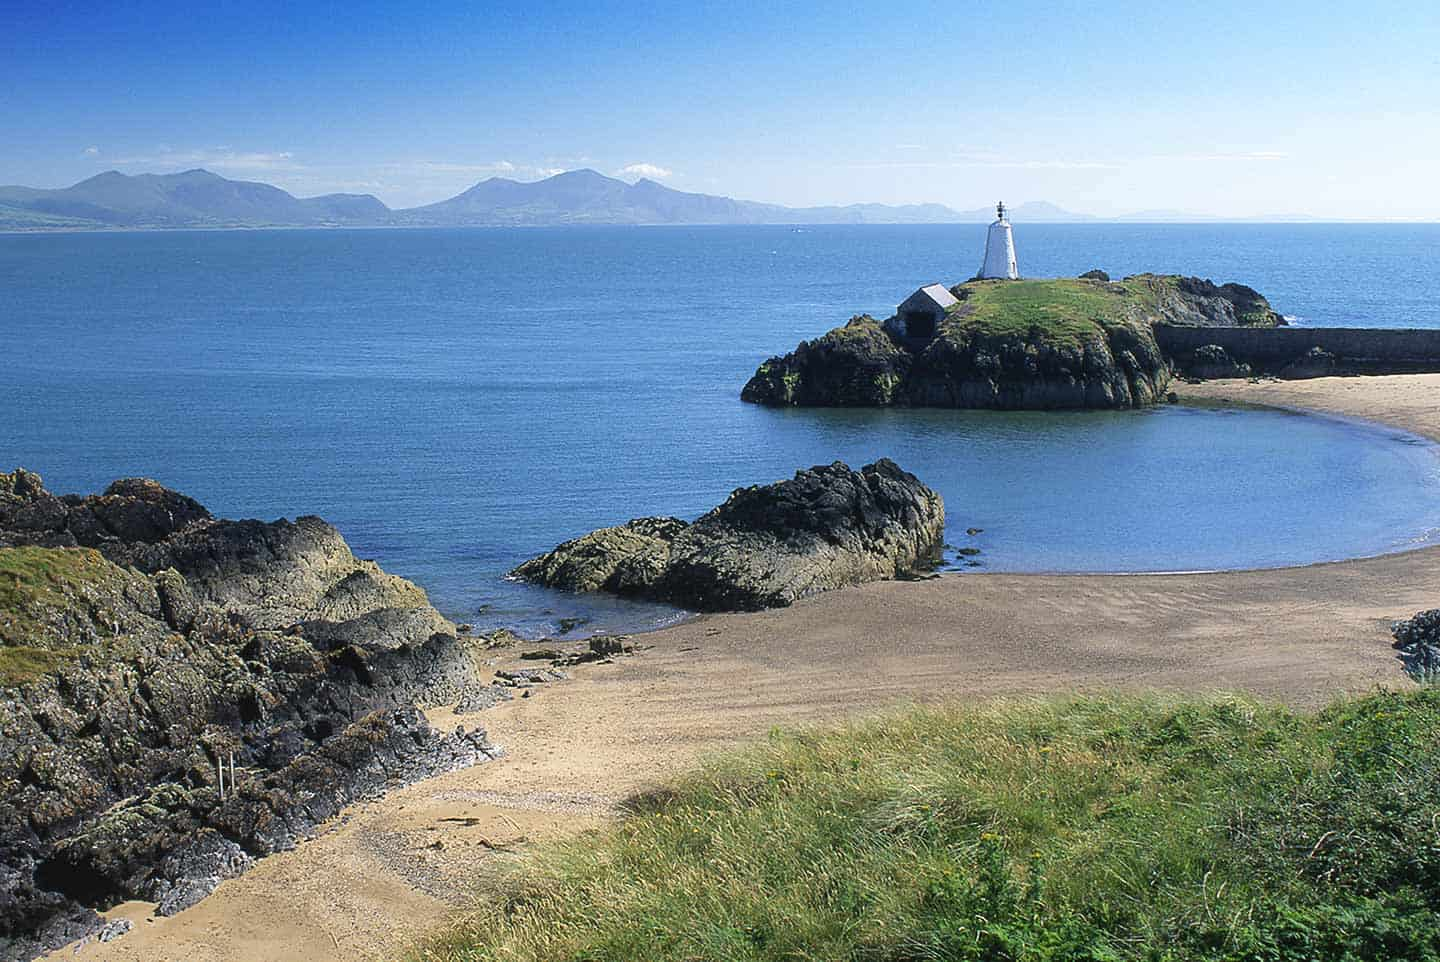 Image of a beach and lighthouse on Llanddwyn Island